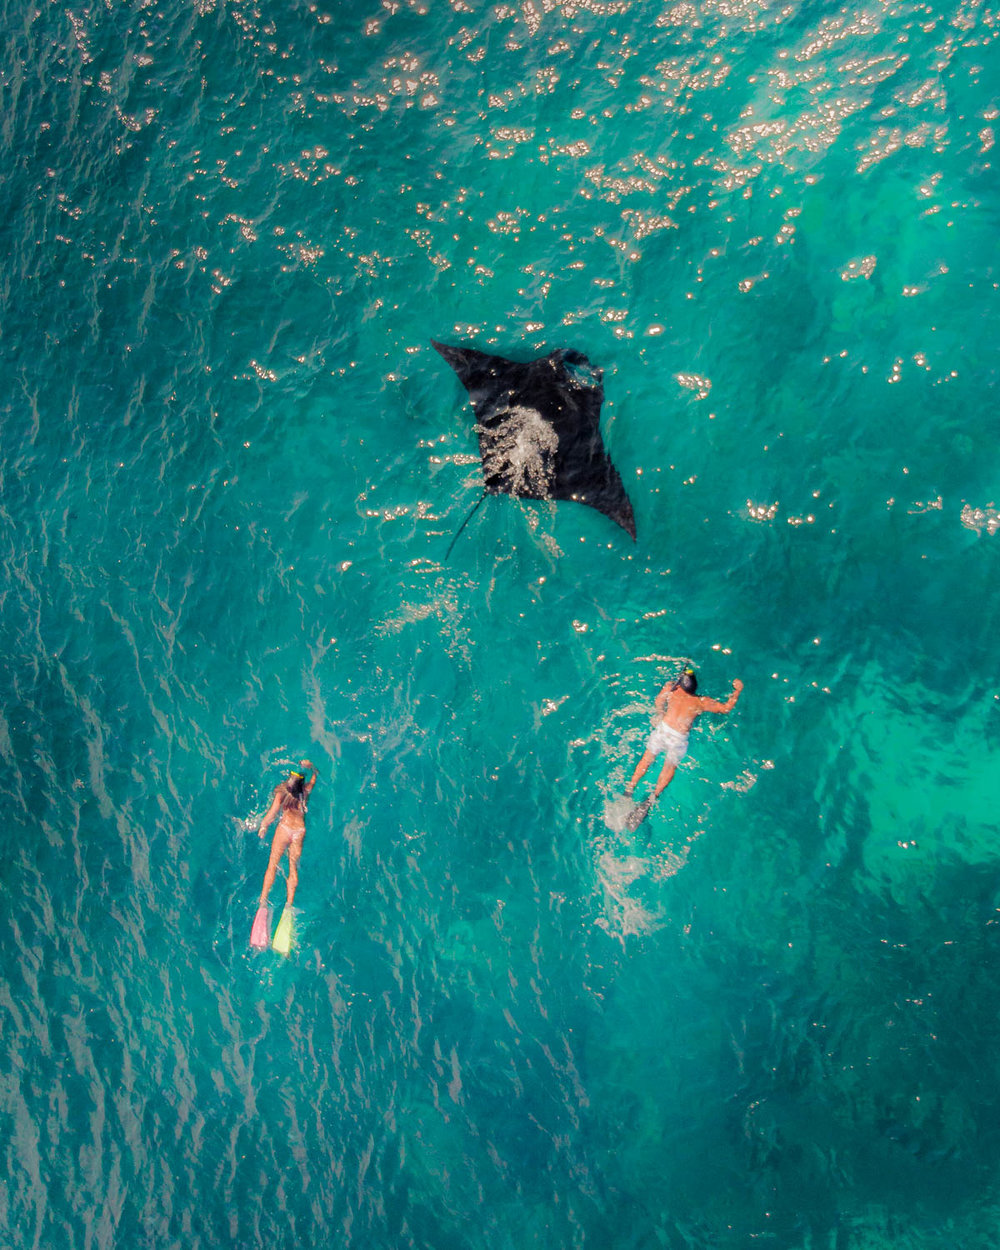 Still one of my favourite shots because we have all seen images of people snorkelling with marine life under water, but I have only ever seen one other from above!